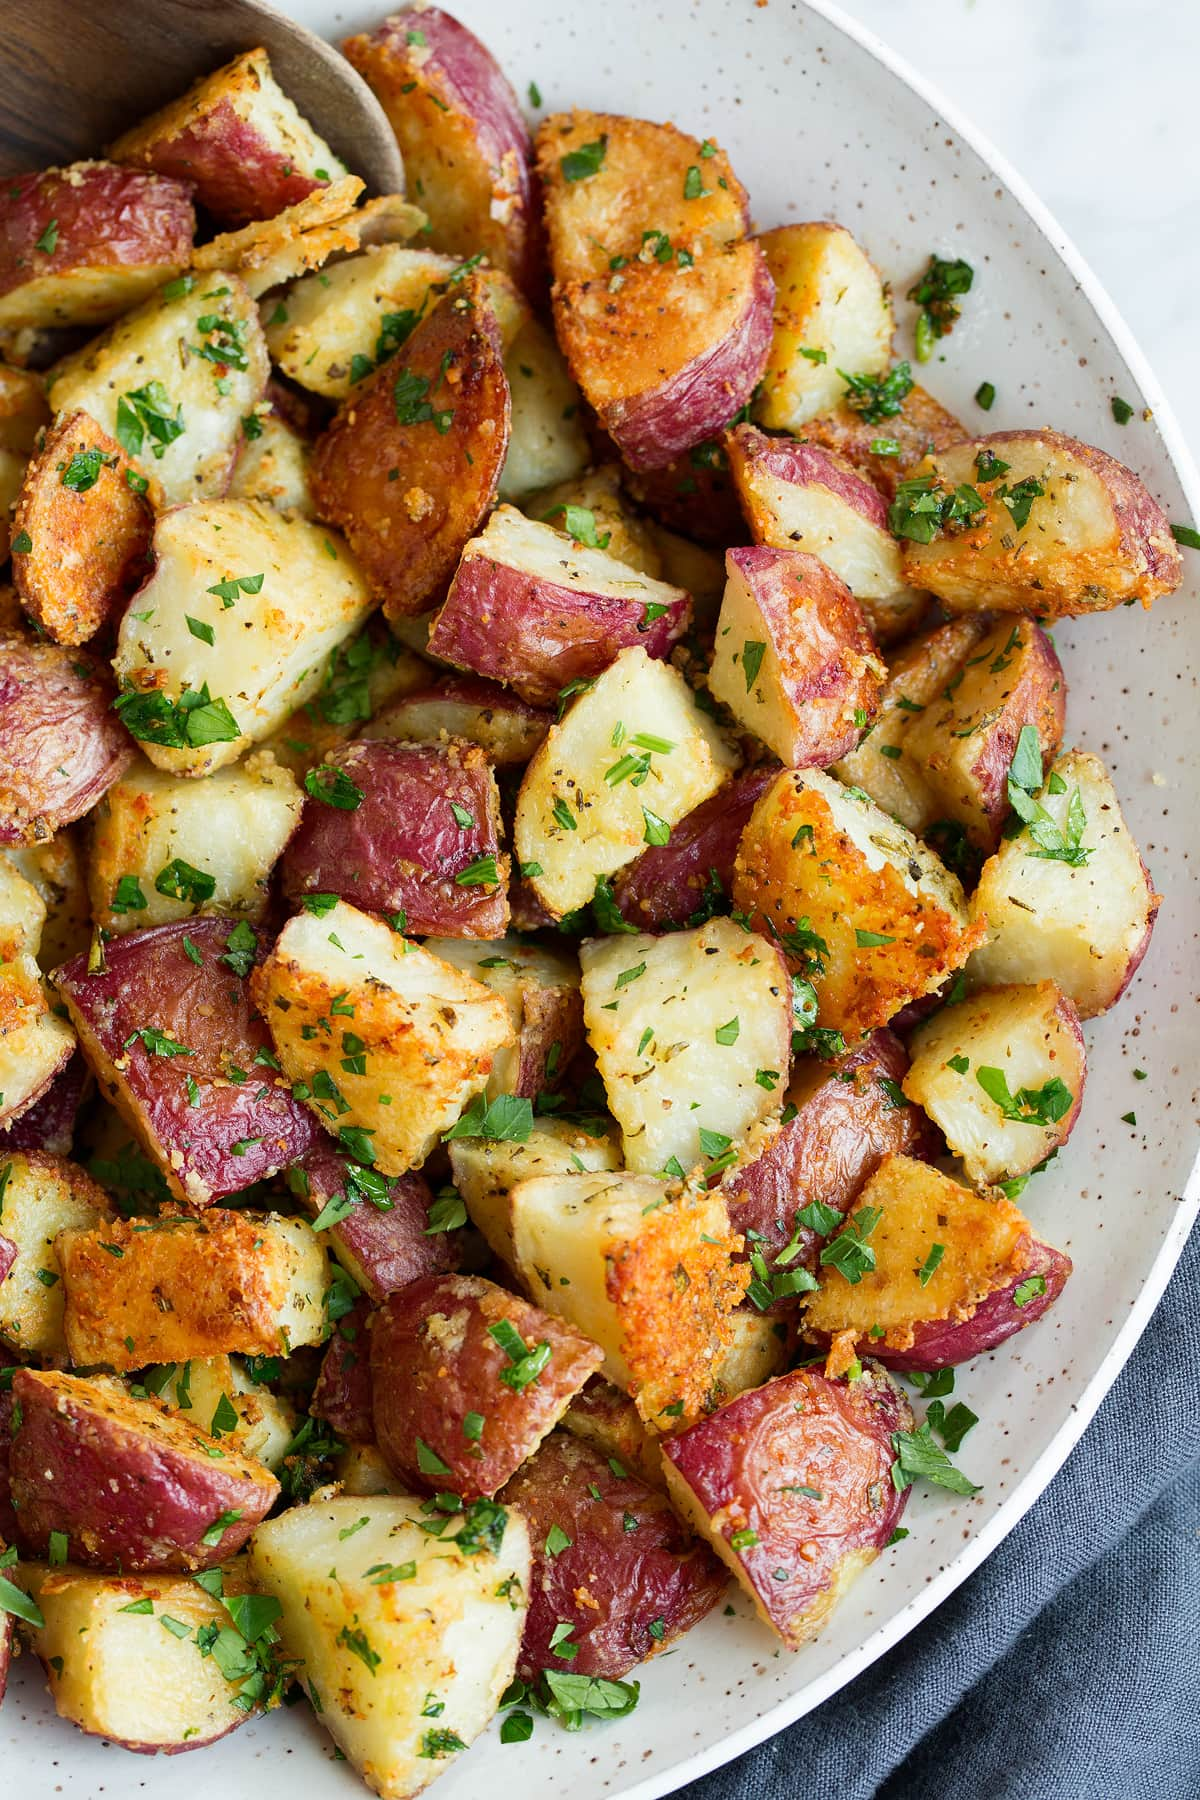 Roasted Potatoes with Parmesan Garlic and Herbs